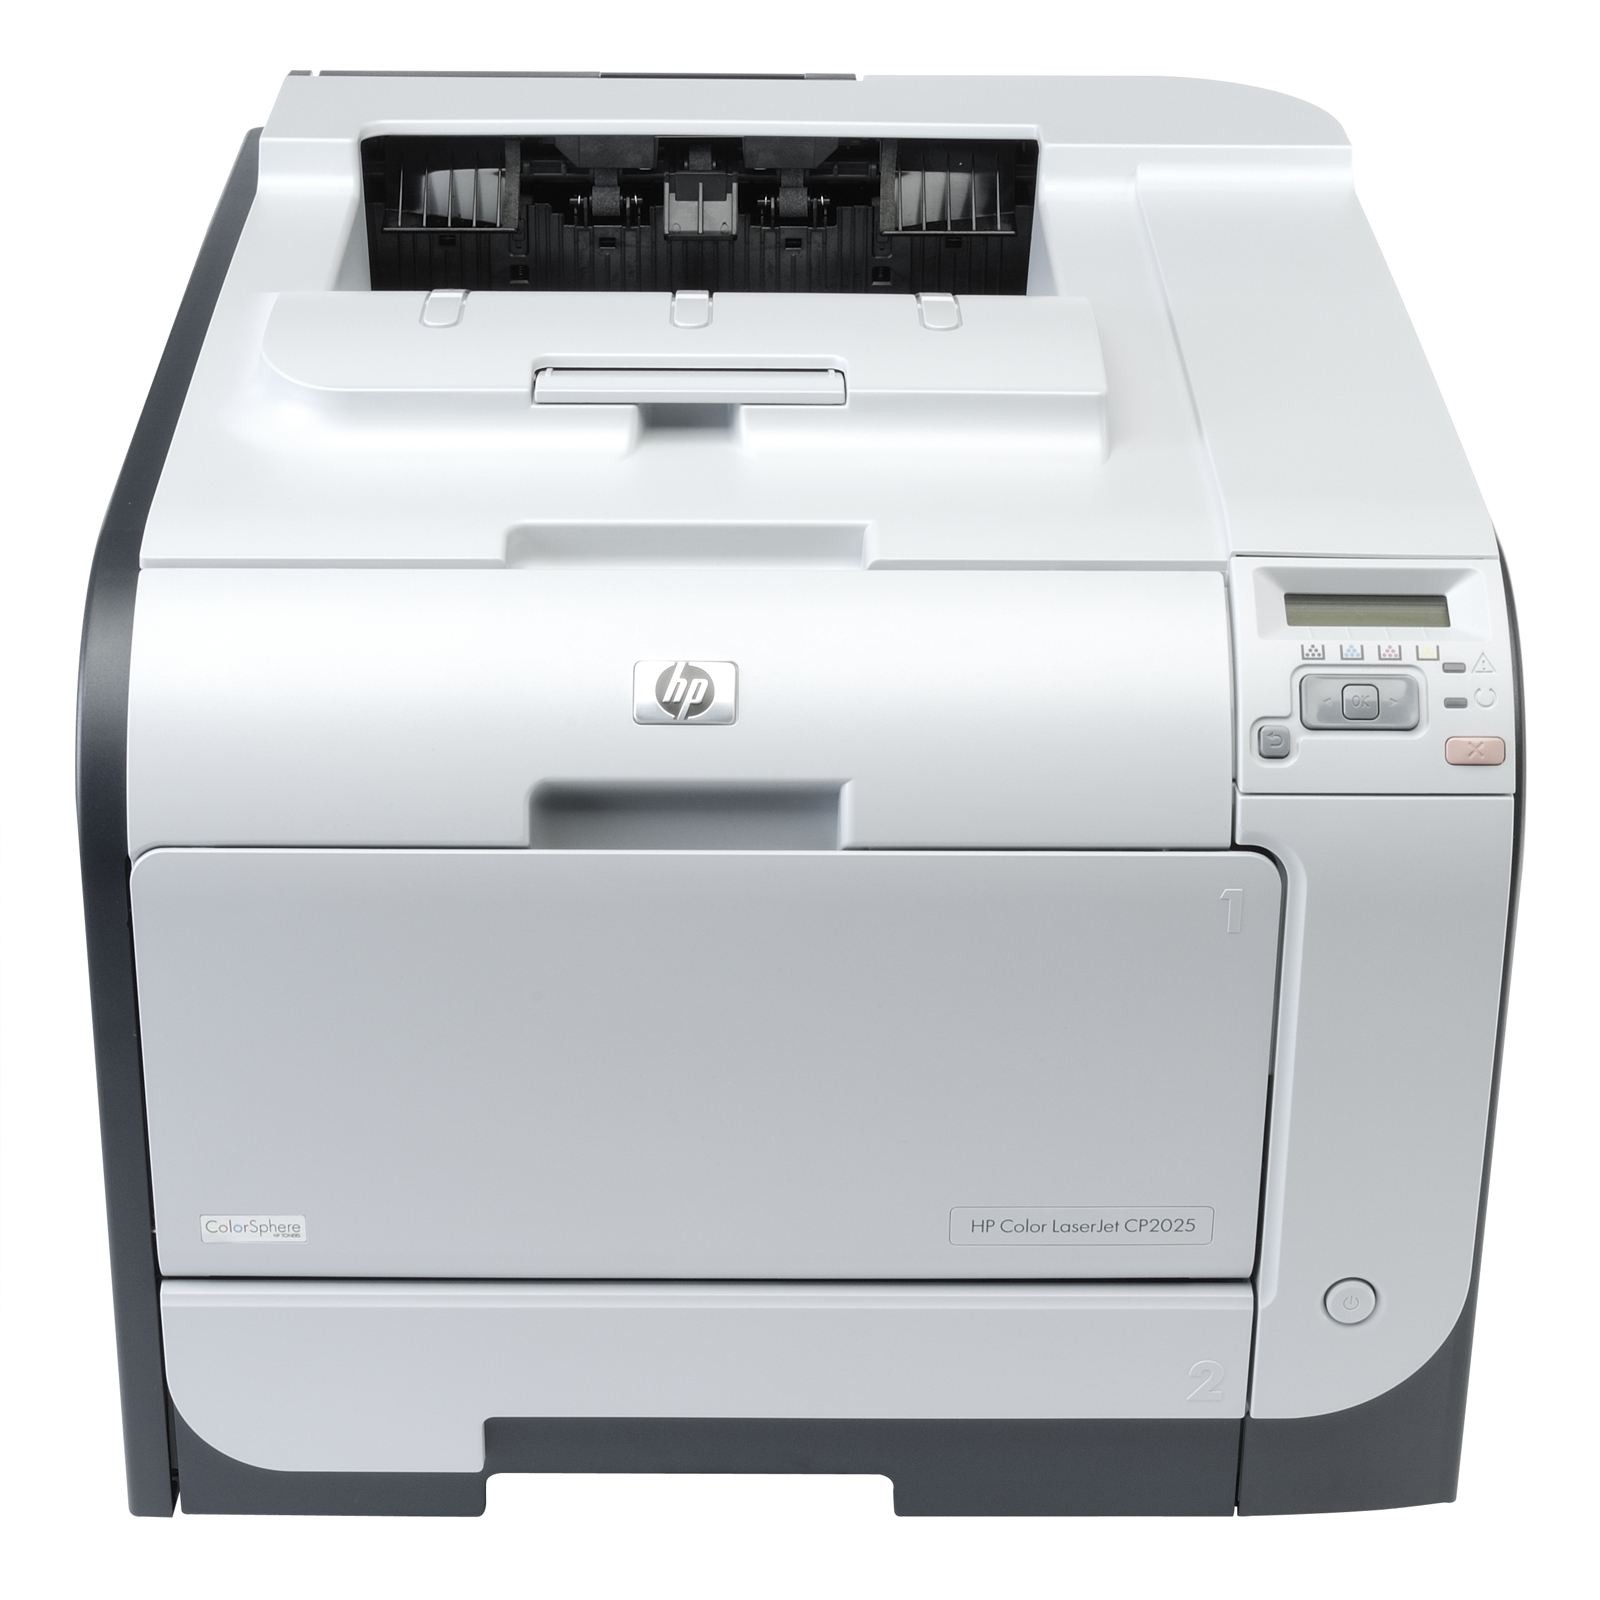 HP LaserJet Color CP2025dn